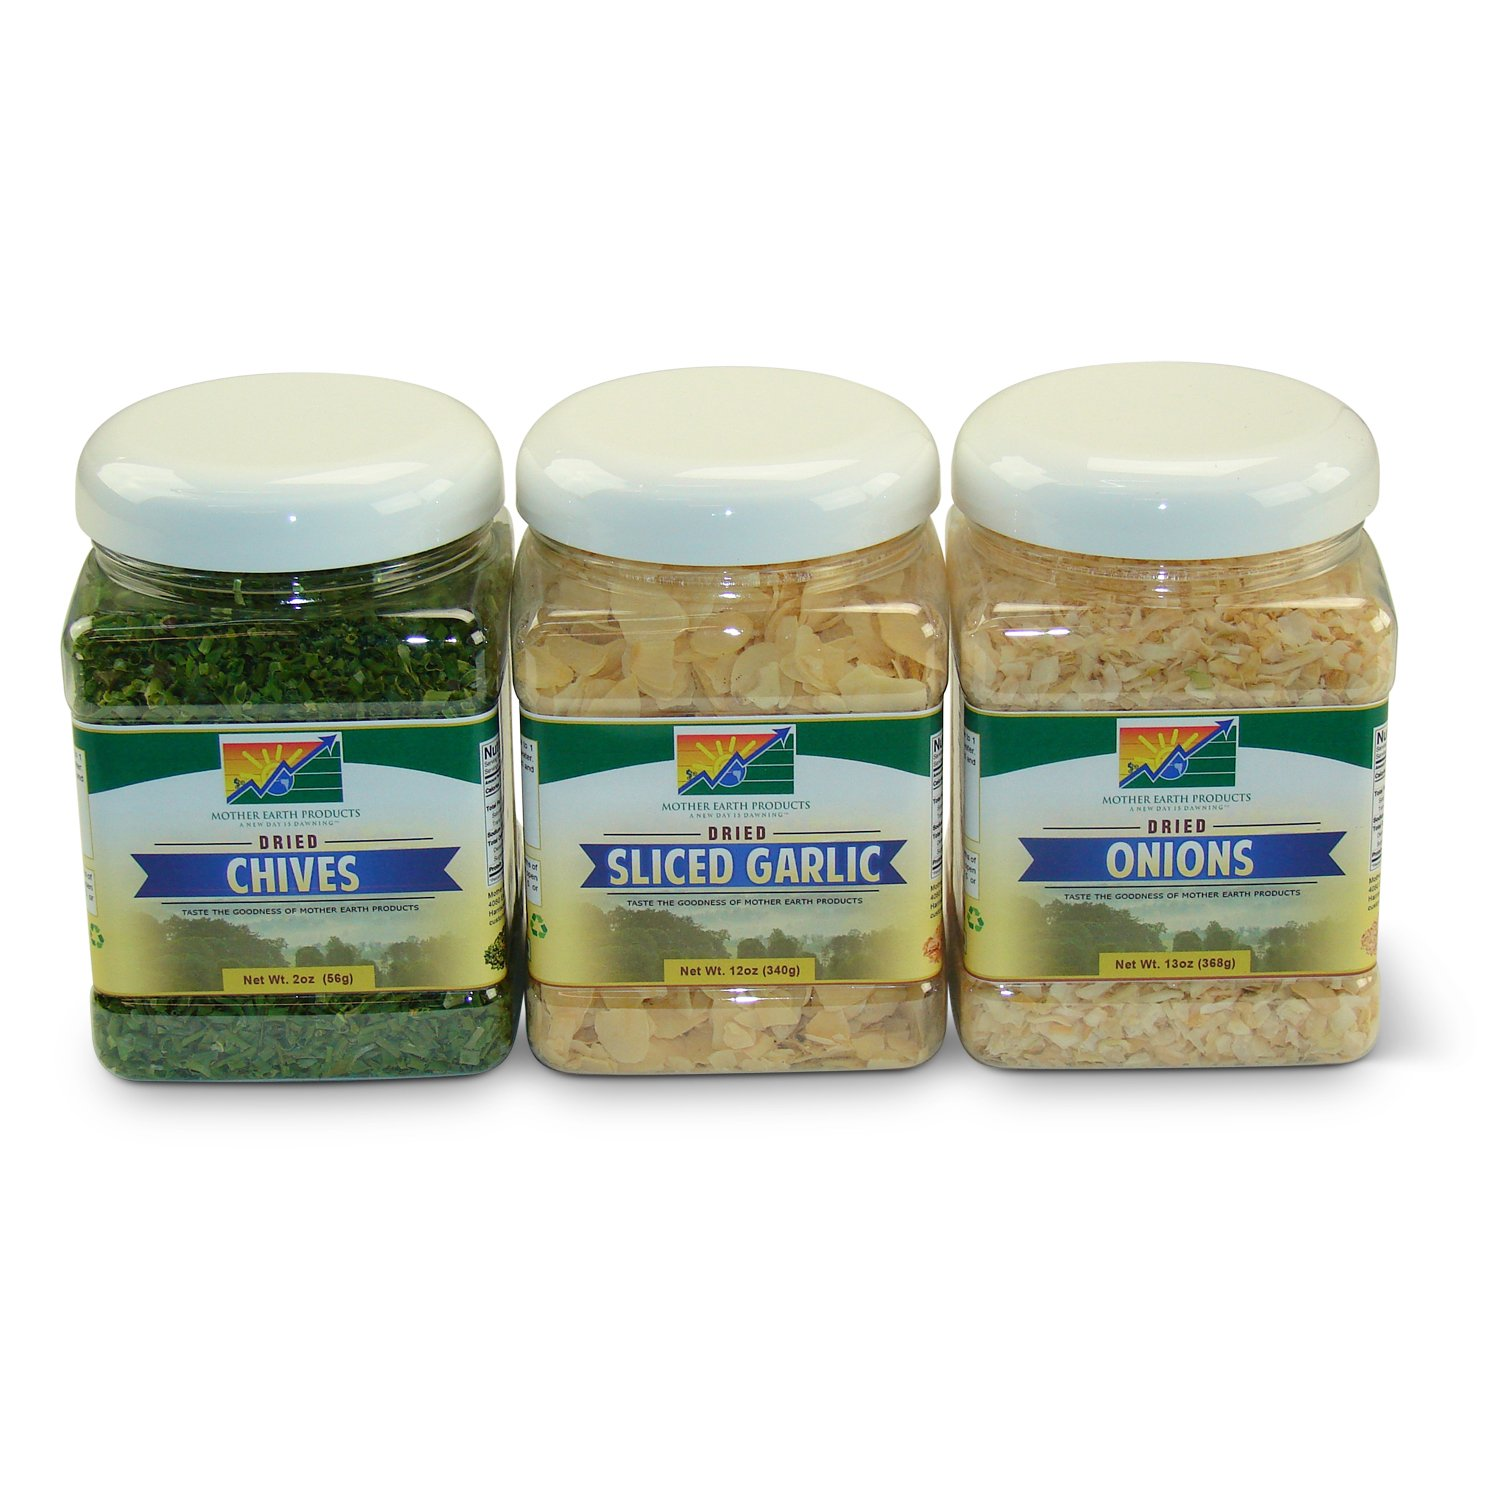 Mother Earth Products Dried Spice Value Medley: Dried Chives, Dried Onions, and Dried Sliced Garlic Quart Jars